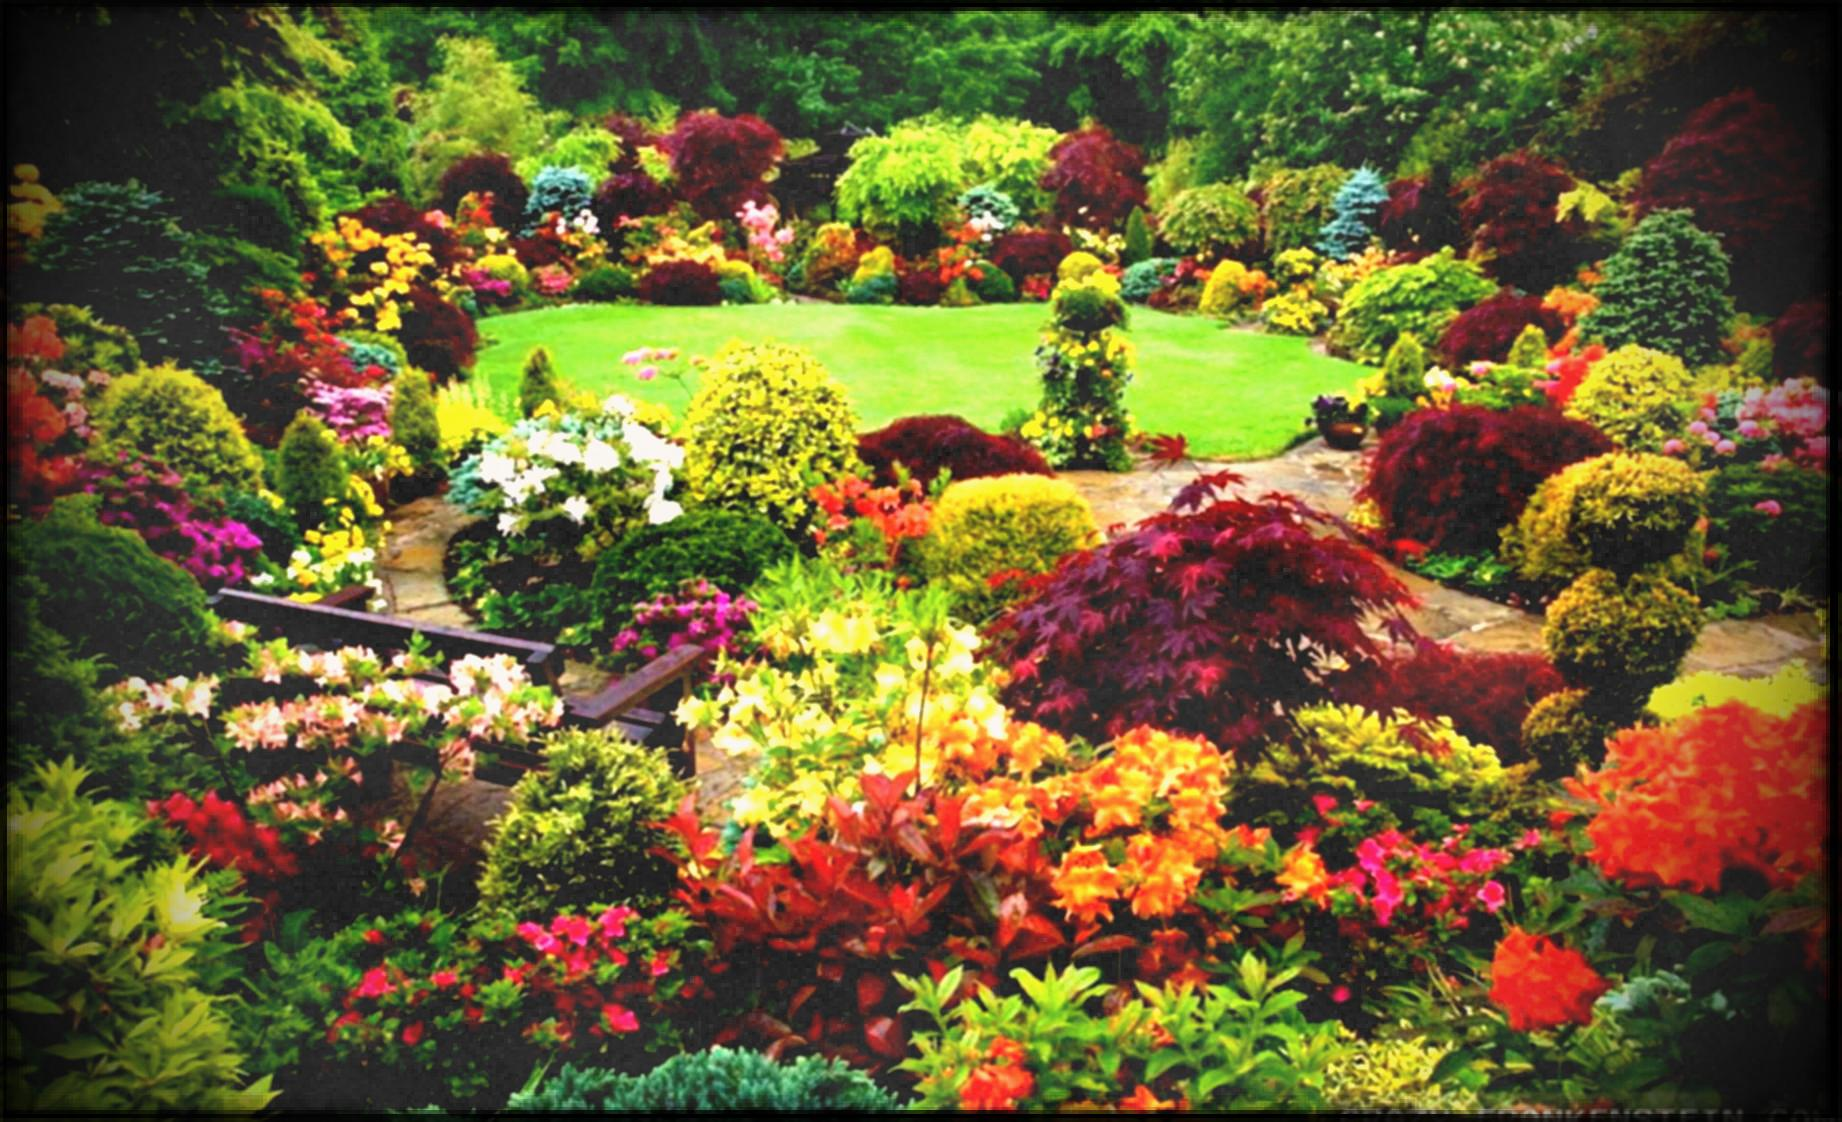 Wallpaper Amazing Beautiful Gardens With Colorful Flowers And Trees ...